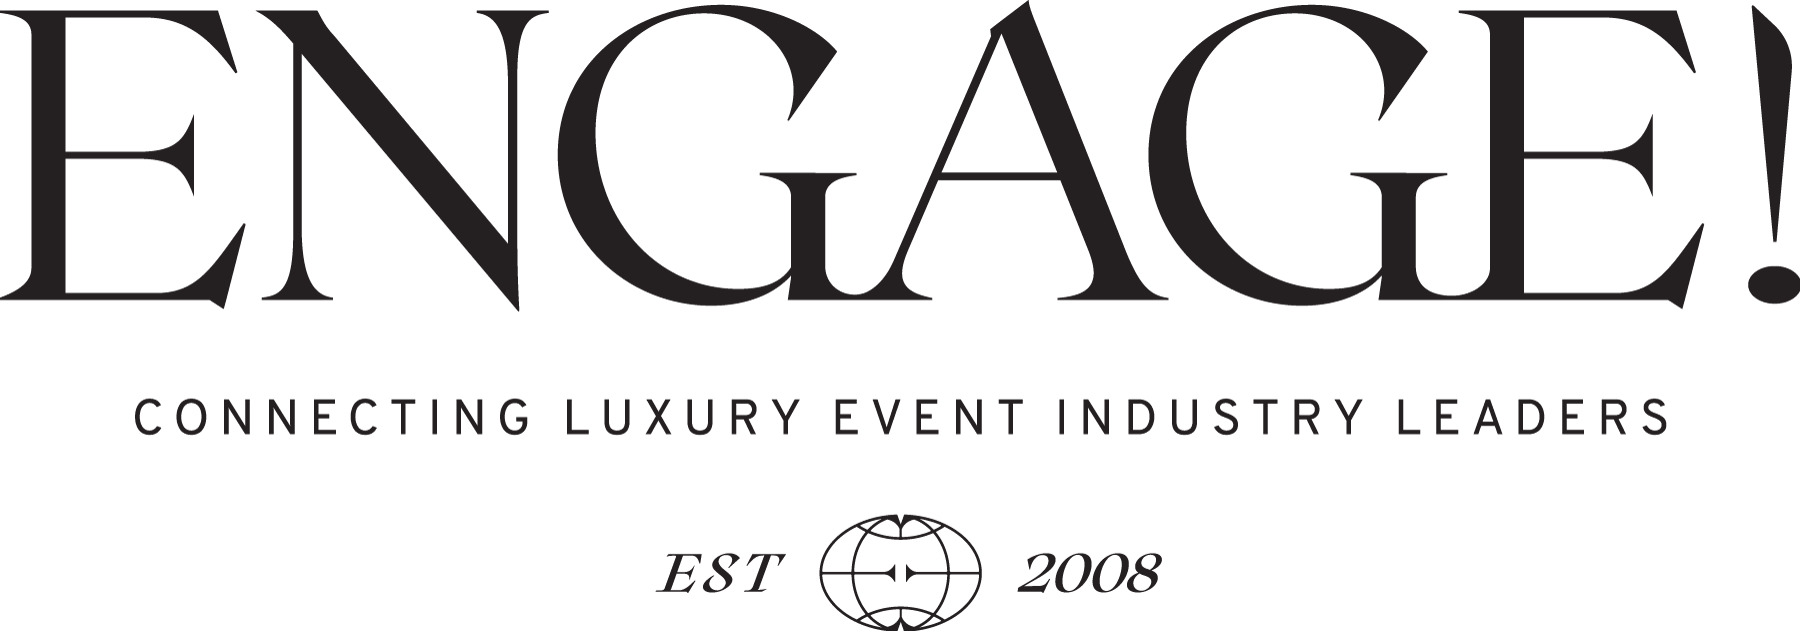 Engage! Connecting luxury event industry leaders. Est'd 2008